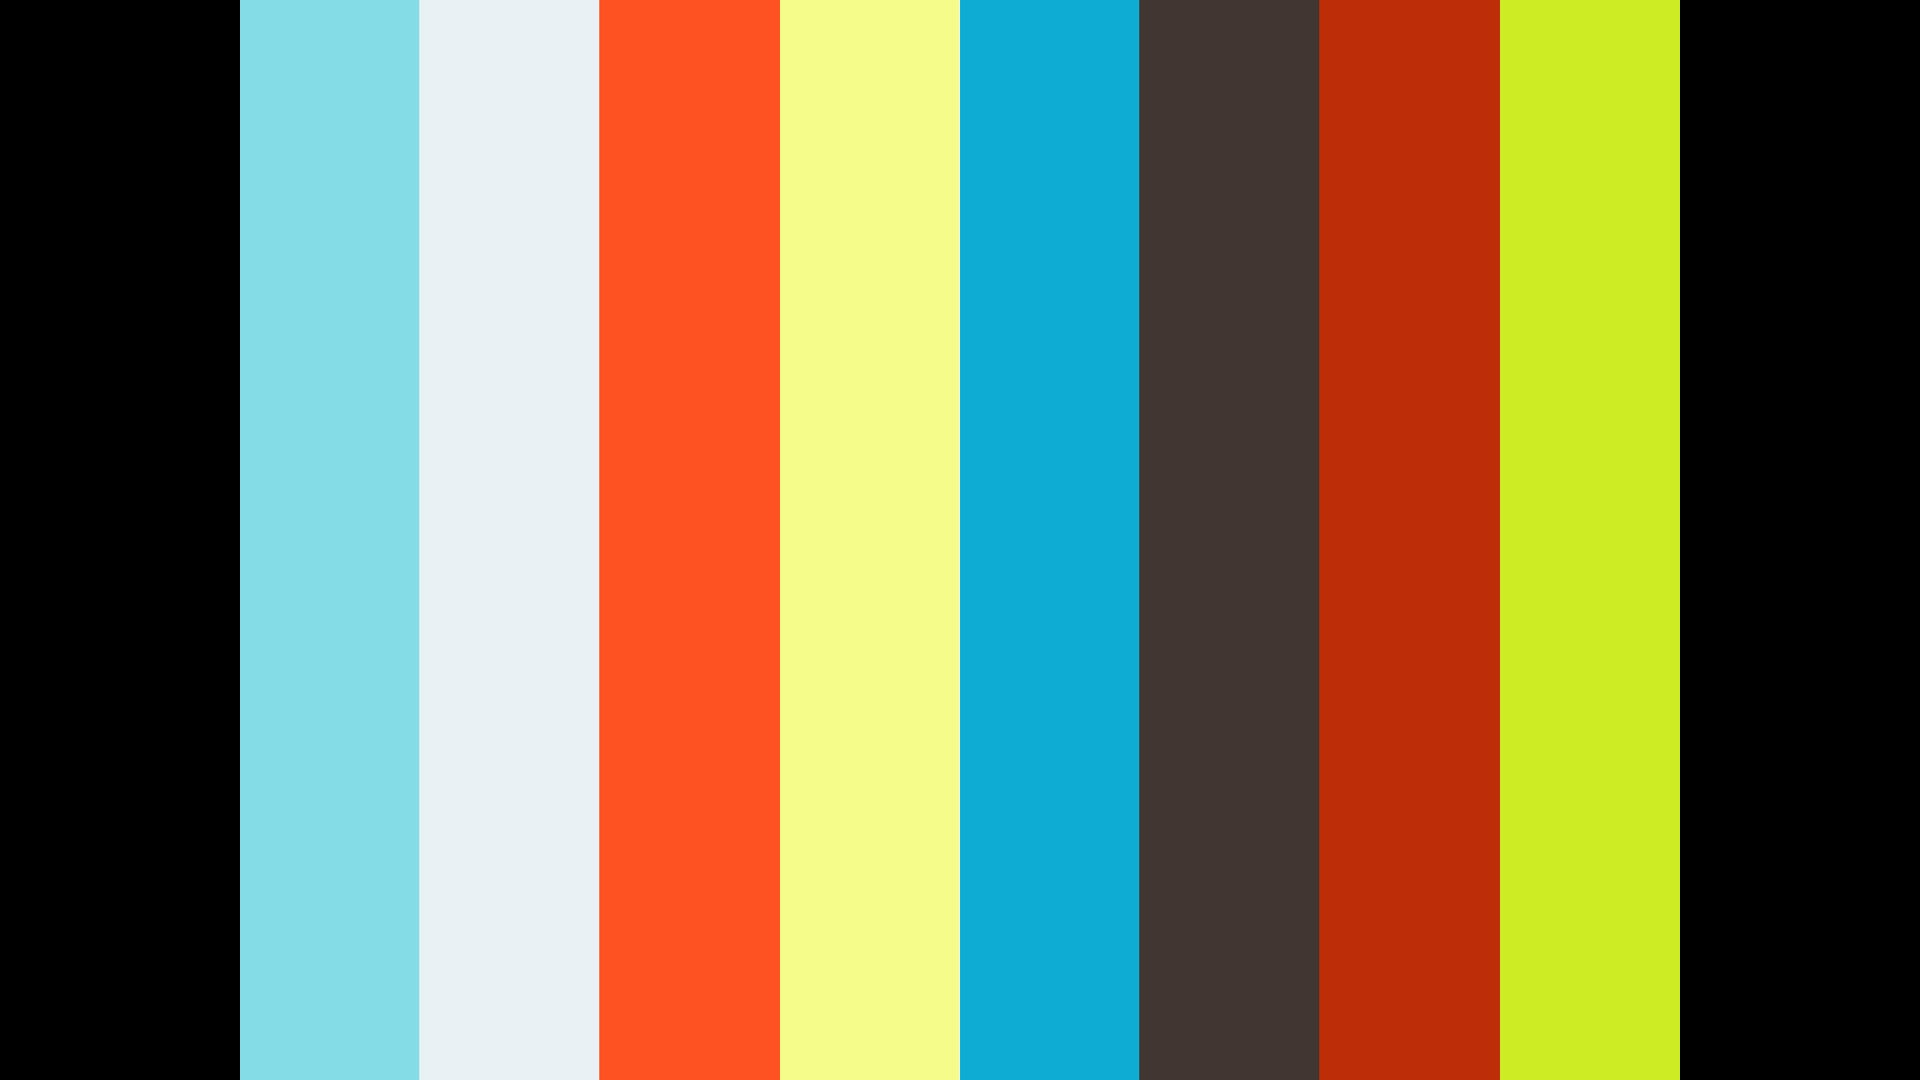 SPY: SP-500 SPDR ETF Video Nov 2015